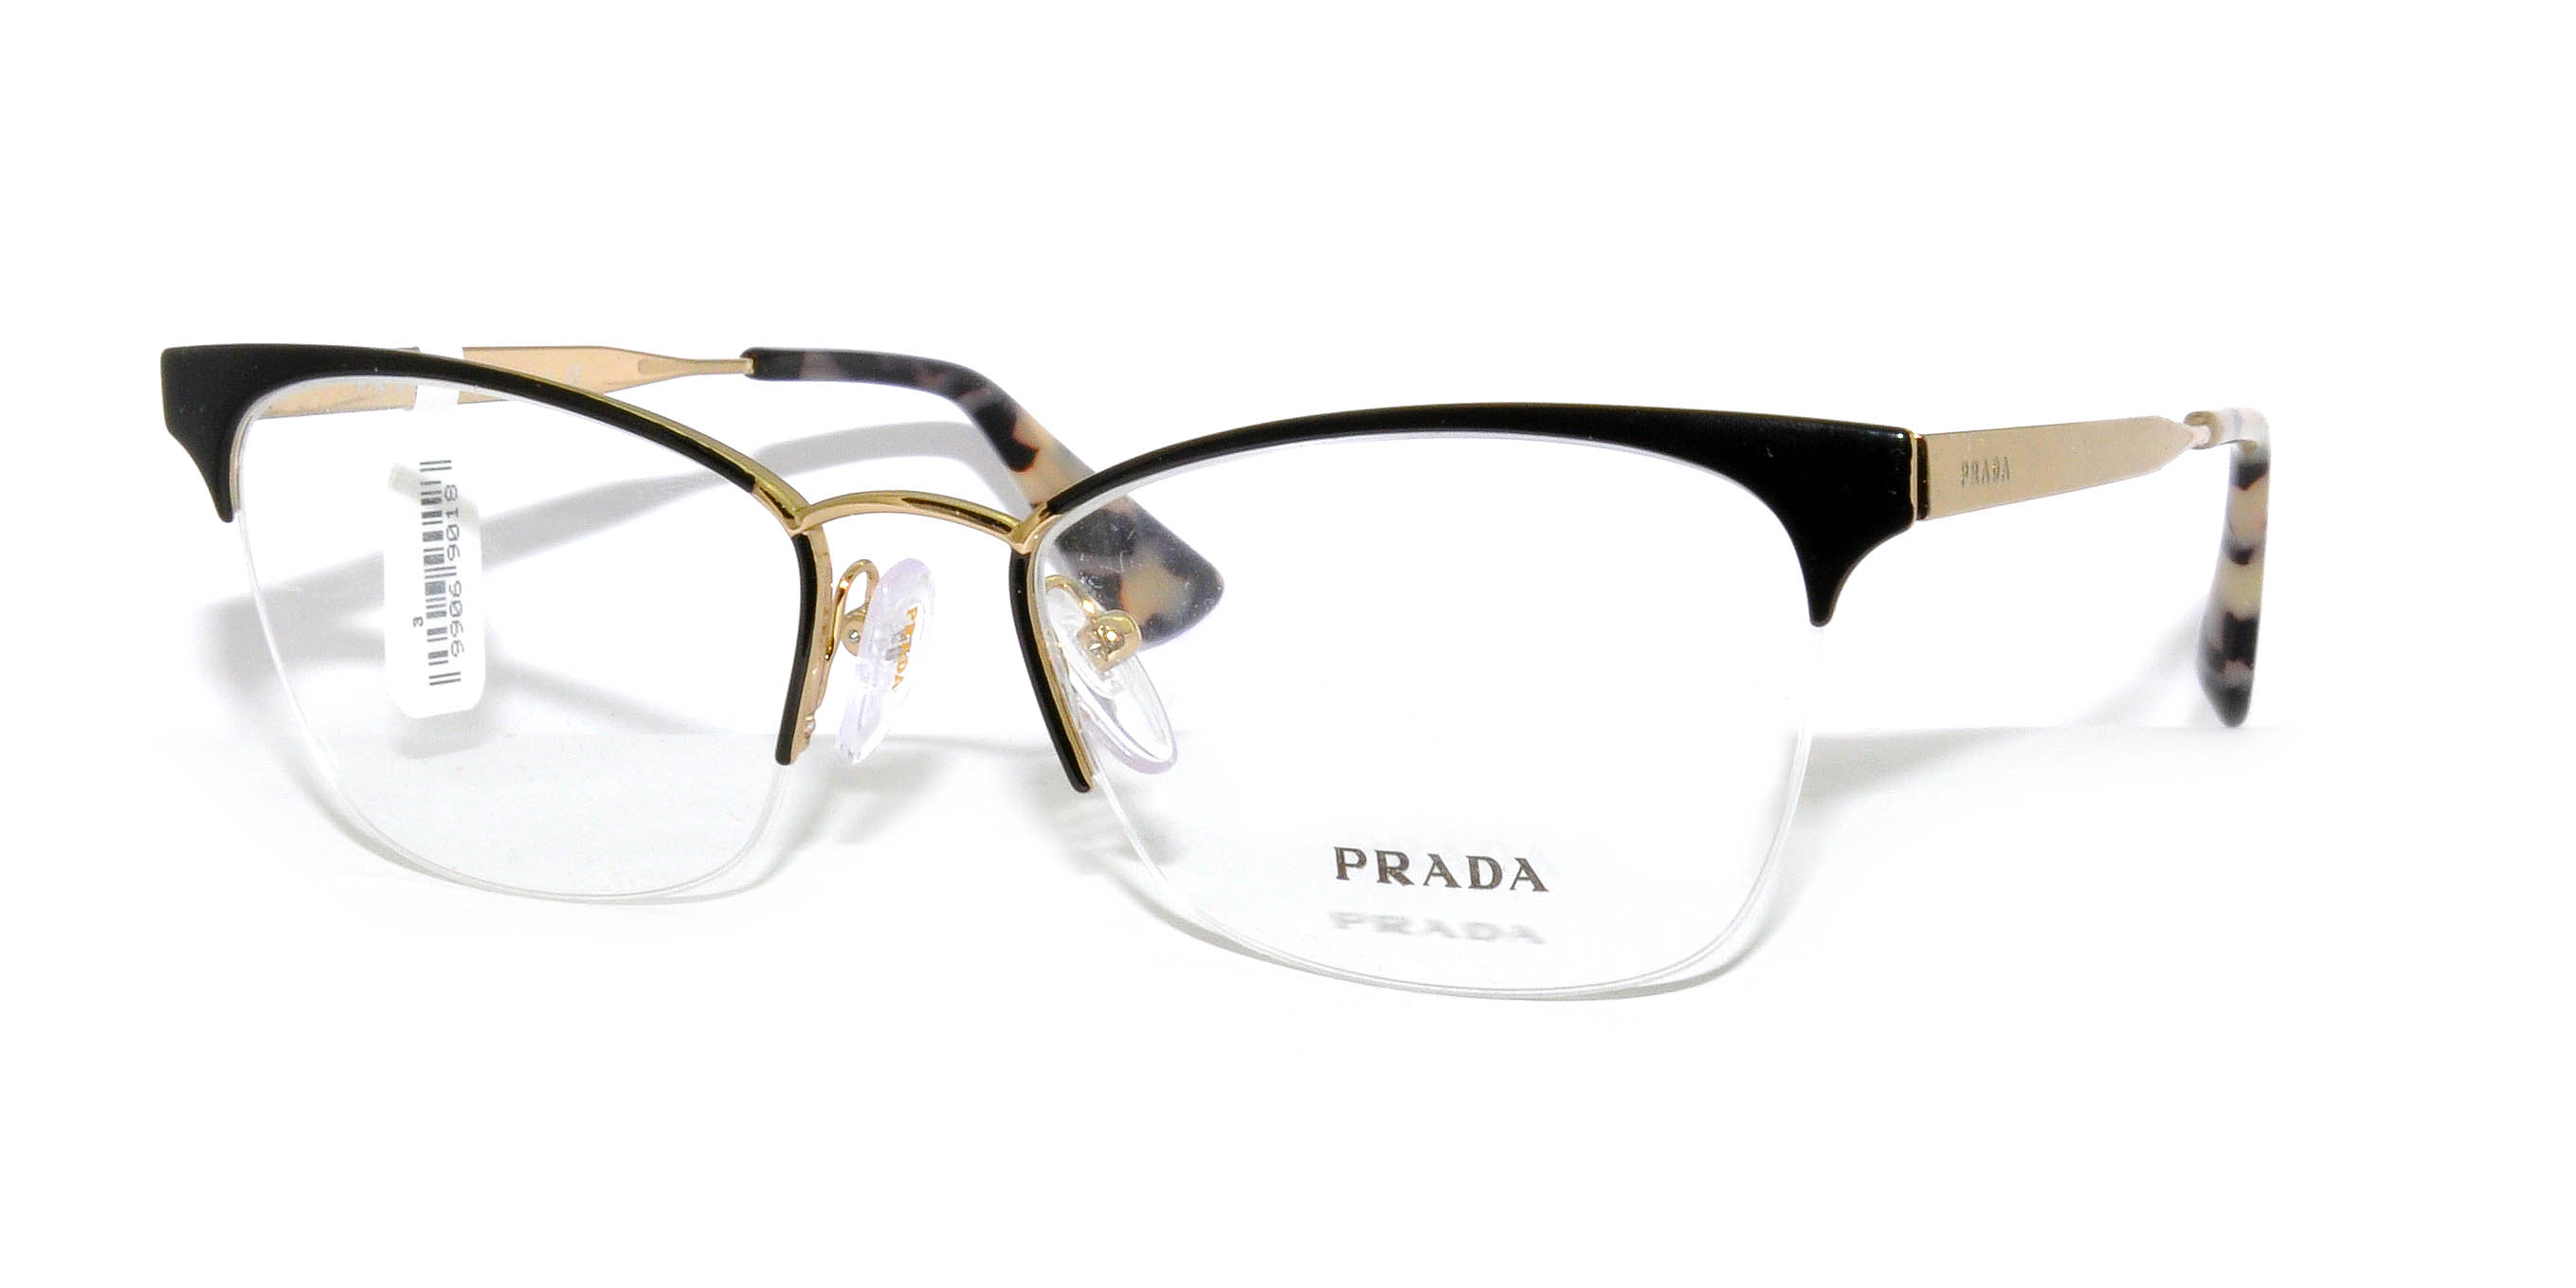 prada pink glasses, black prada bag